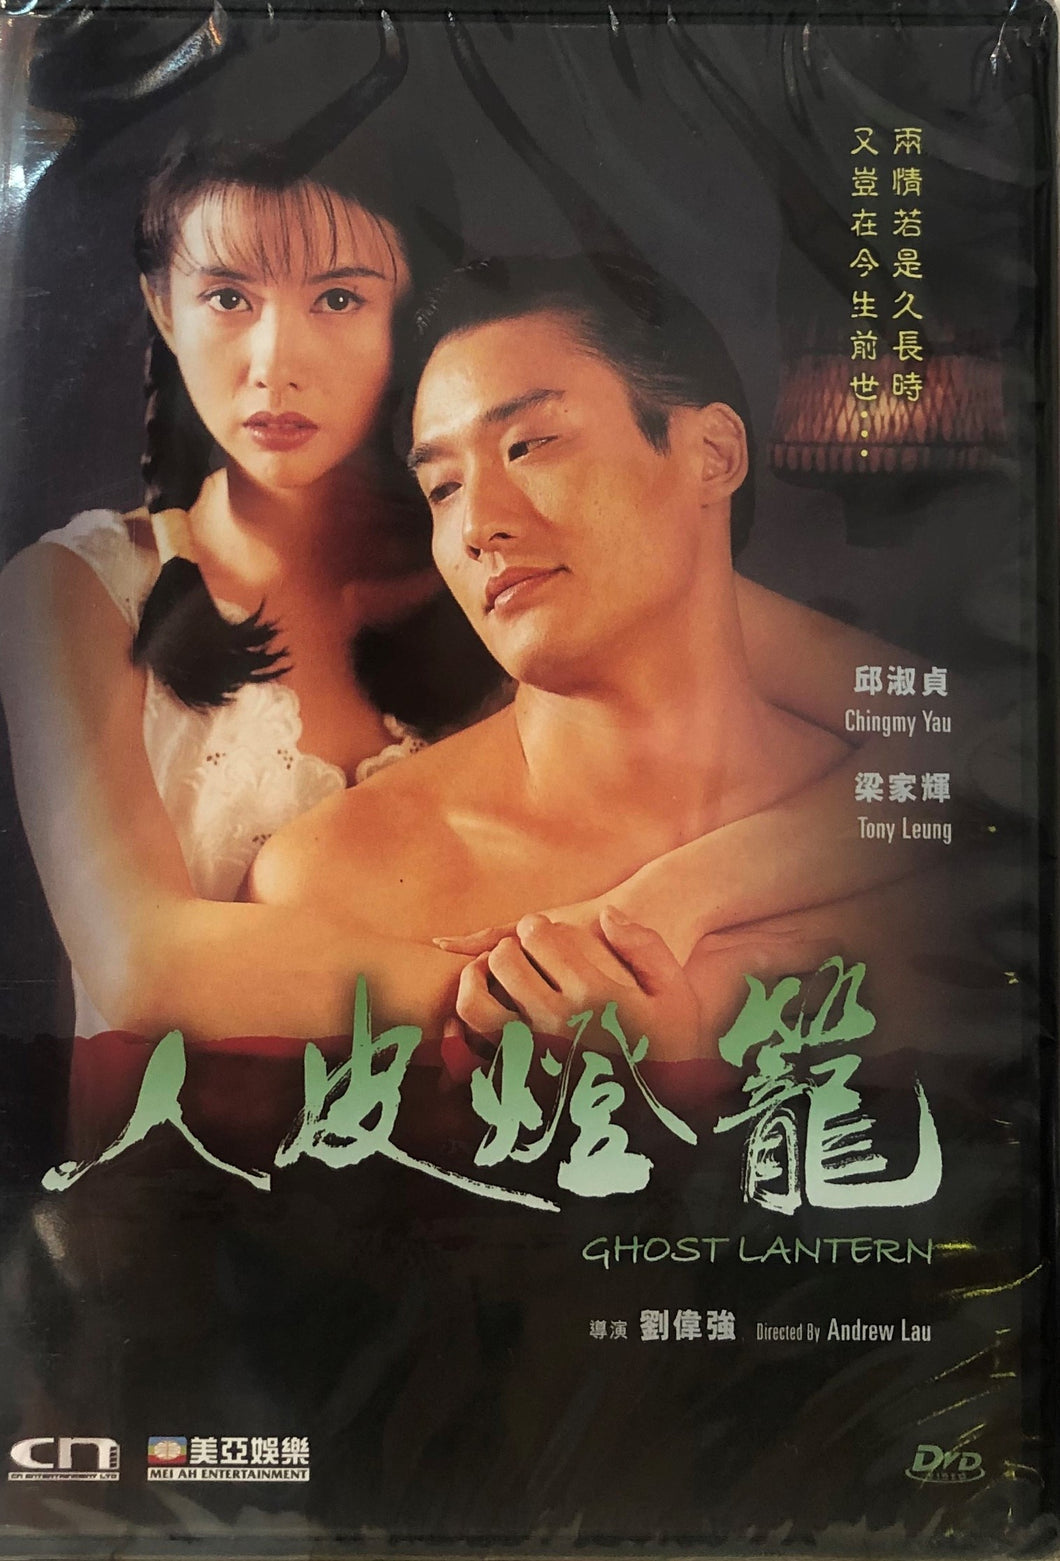 Ghost Lantern 1993 (Hong Kong Movie) DVD with English Subtitles (Region Free) 人皮燈籠